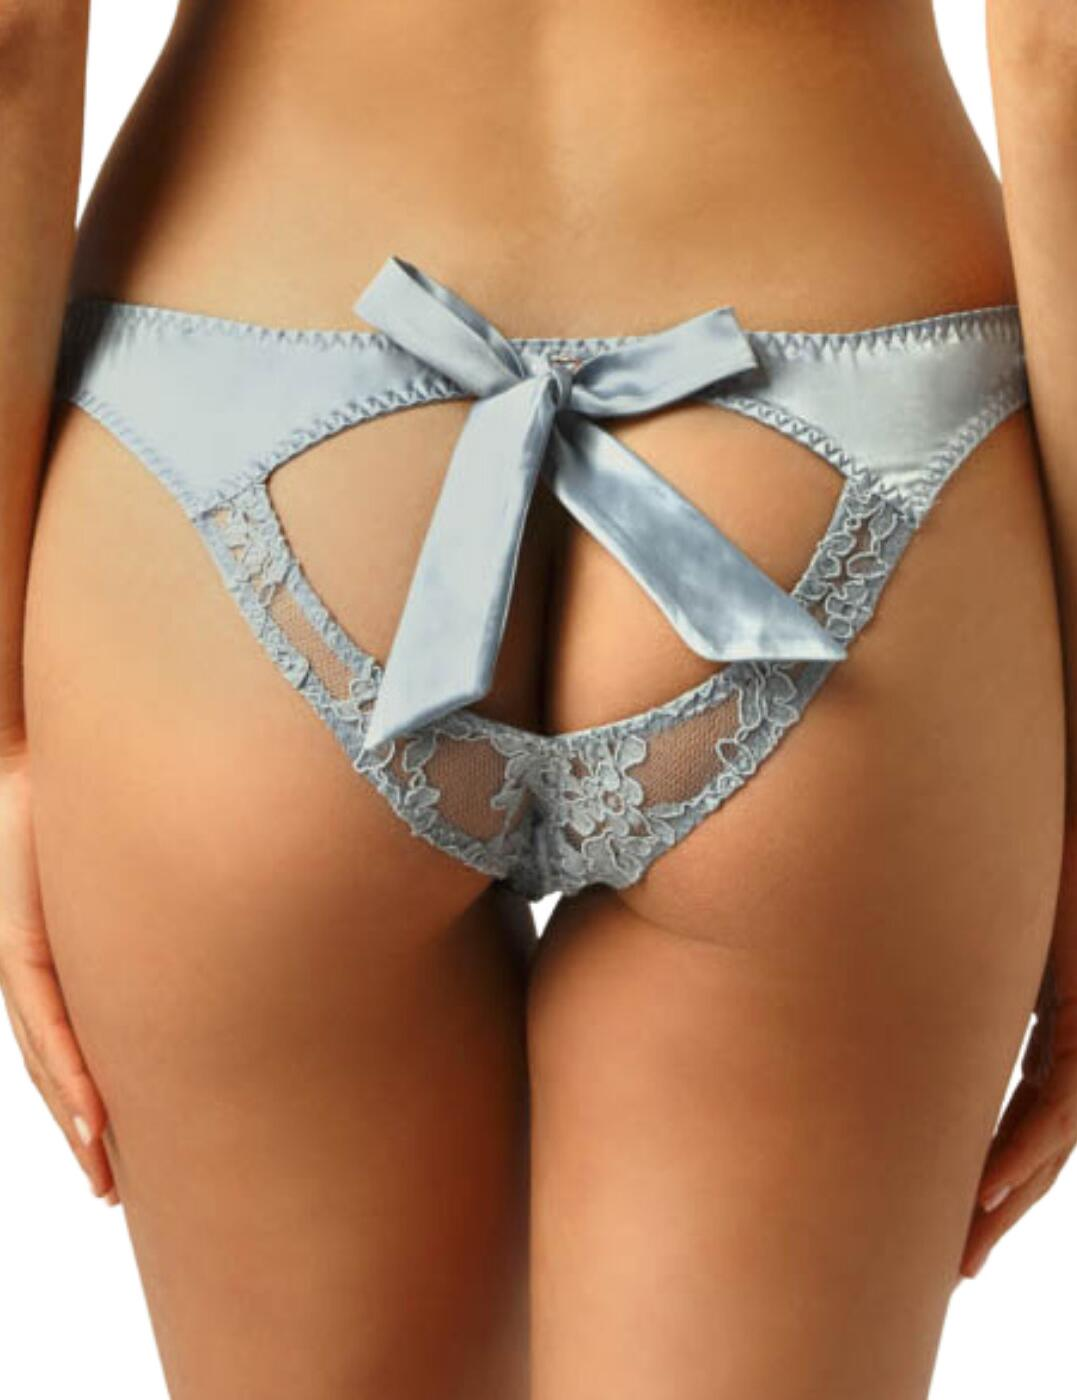 Muse by Coco De Mer Viola Open Bow Knickers in Pale Blue